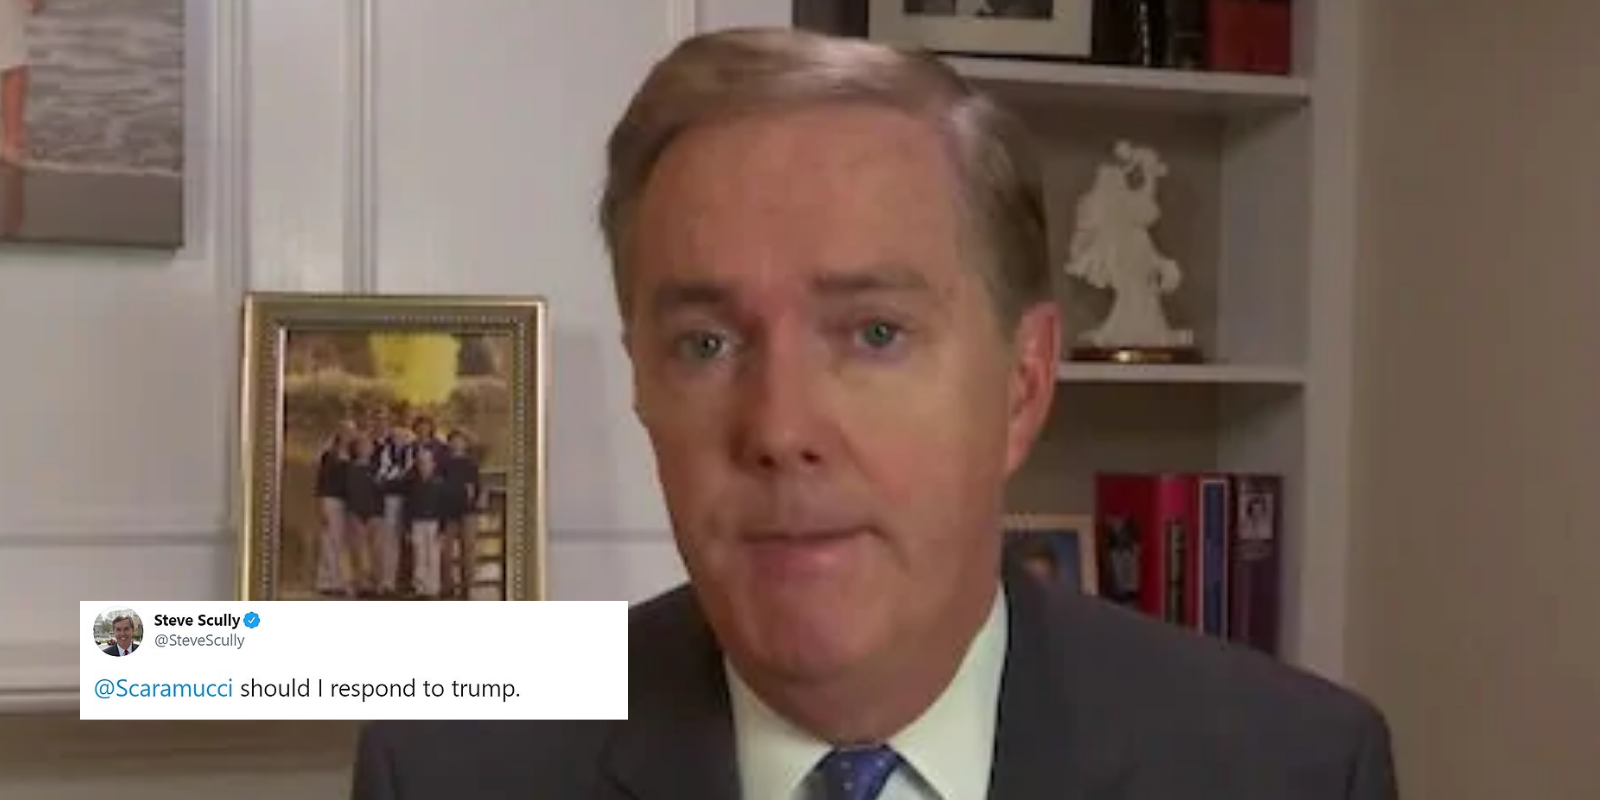 BREAKING: C-SPAN suspends political editor Steve Scully indefinitely after he lied about his Twitter being hacked